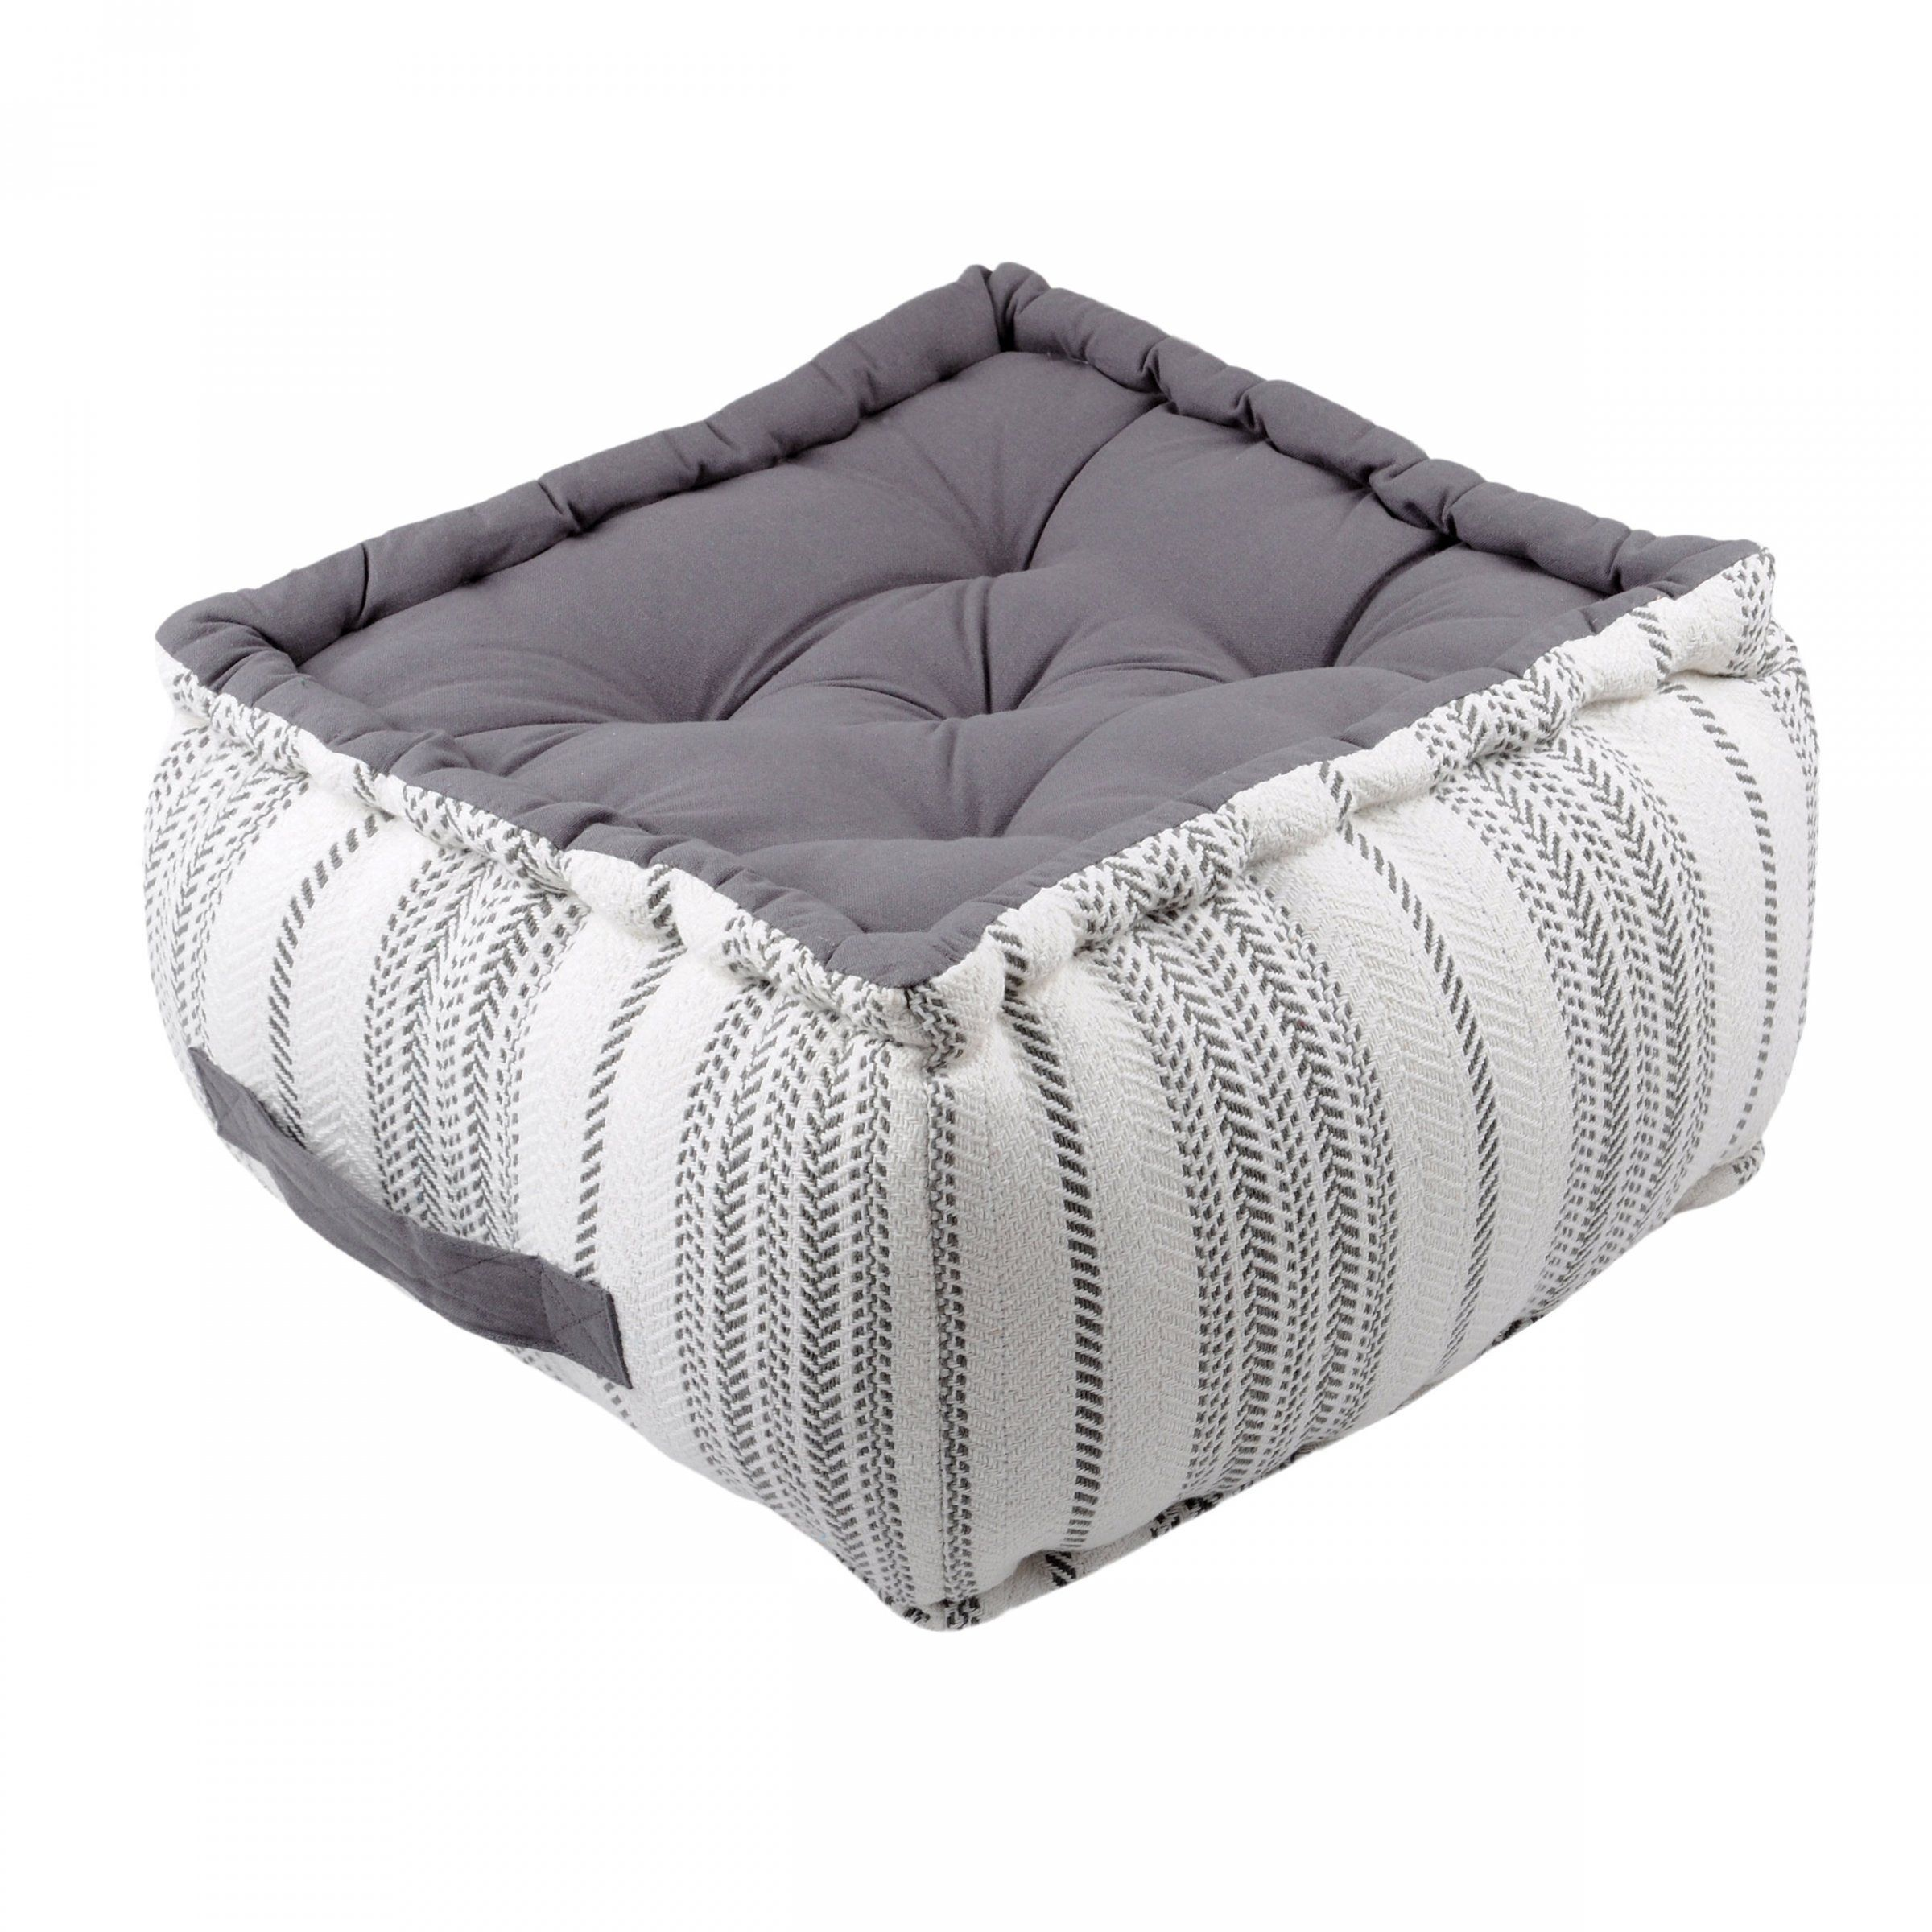 coussin de sol pouf 40 cm valdavia coussin de sol et. Black Bedroom Furniture Sets. Home Design Ideas